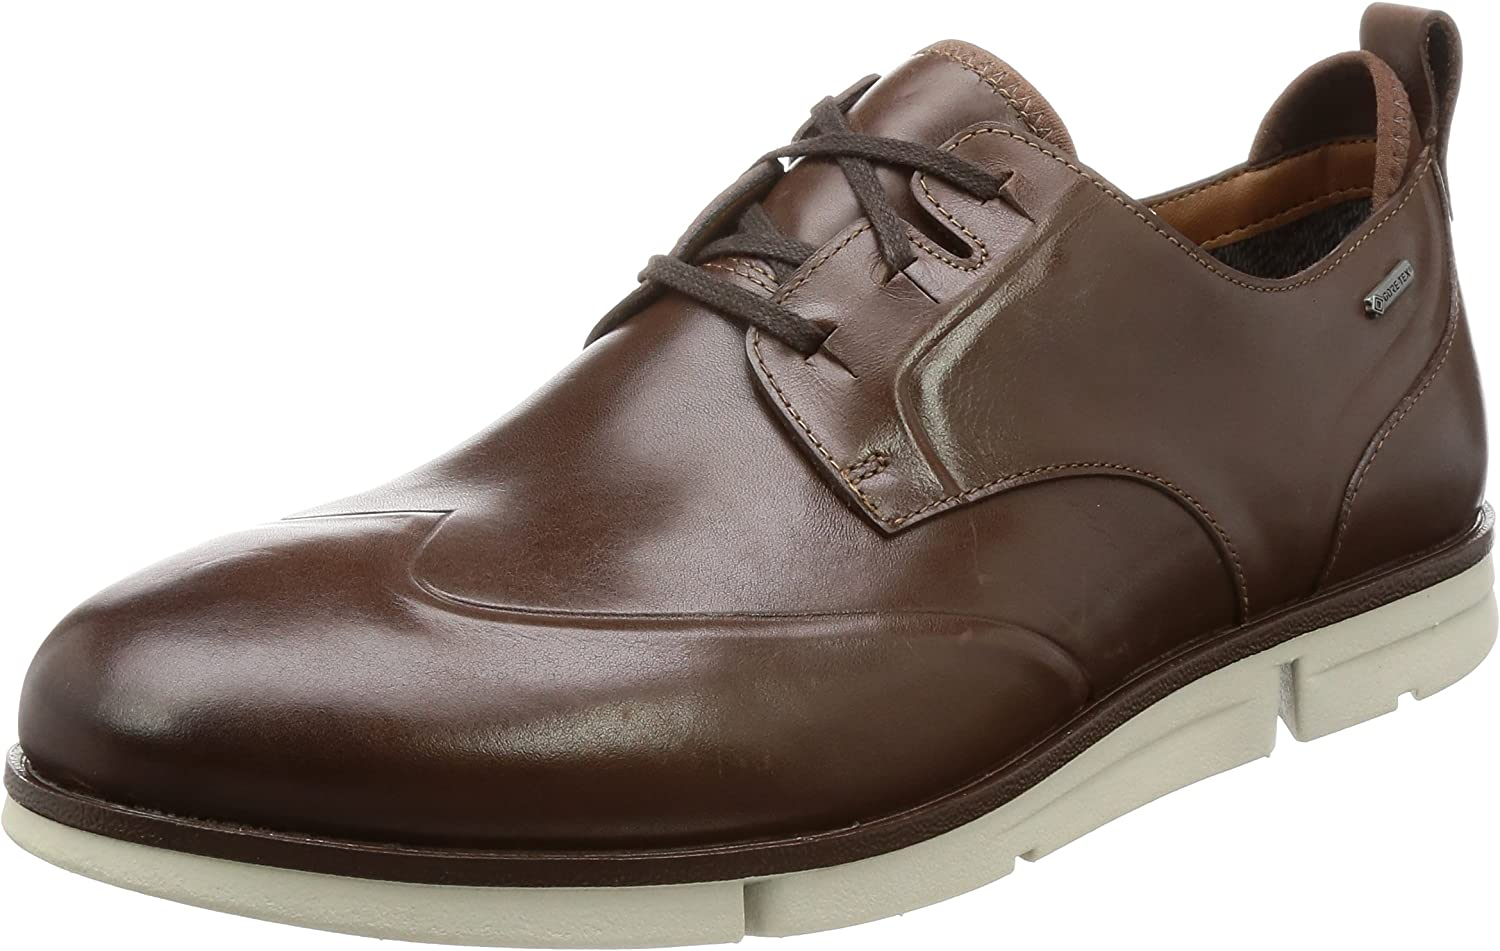 Clarks Men's Lace-Up Flats tan